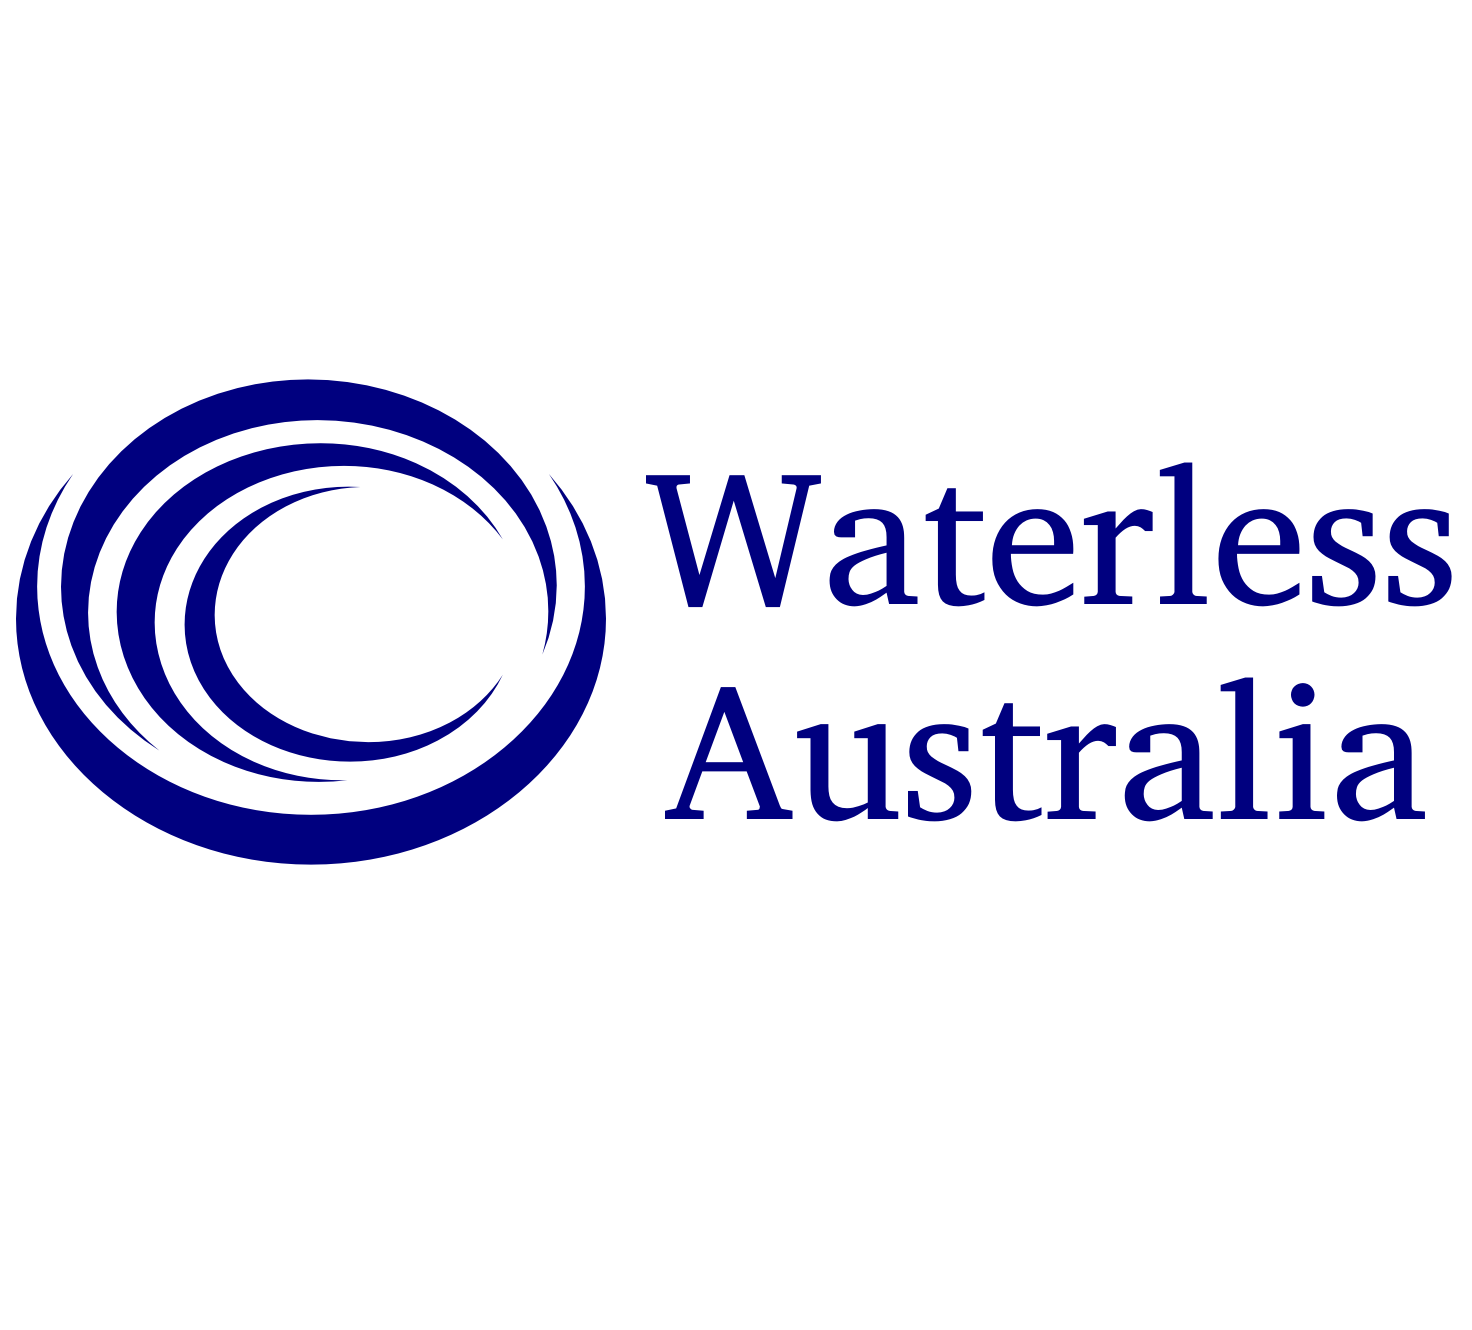 Waterless Australia